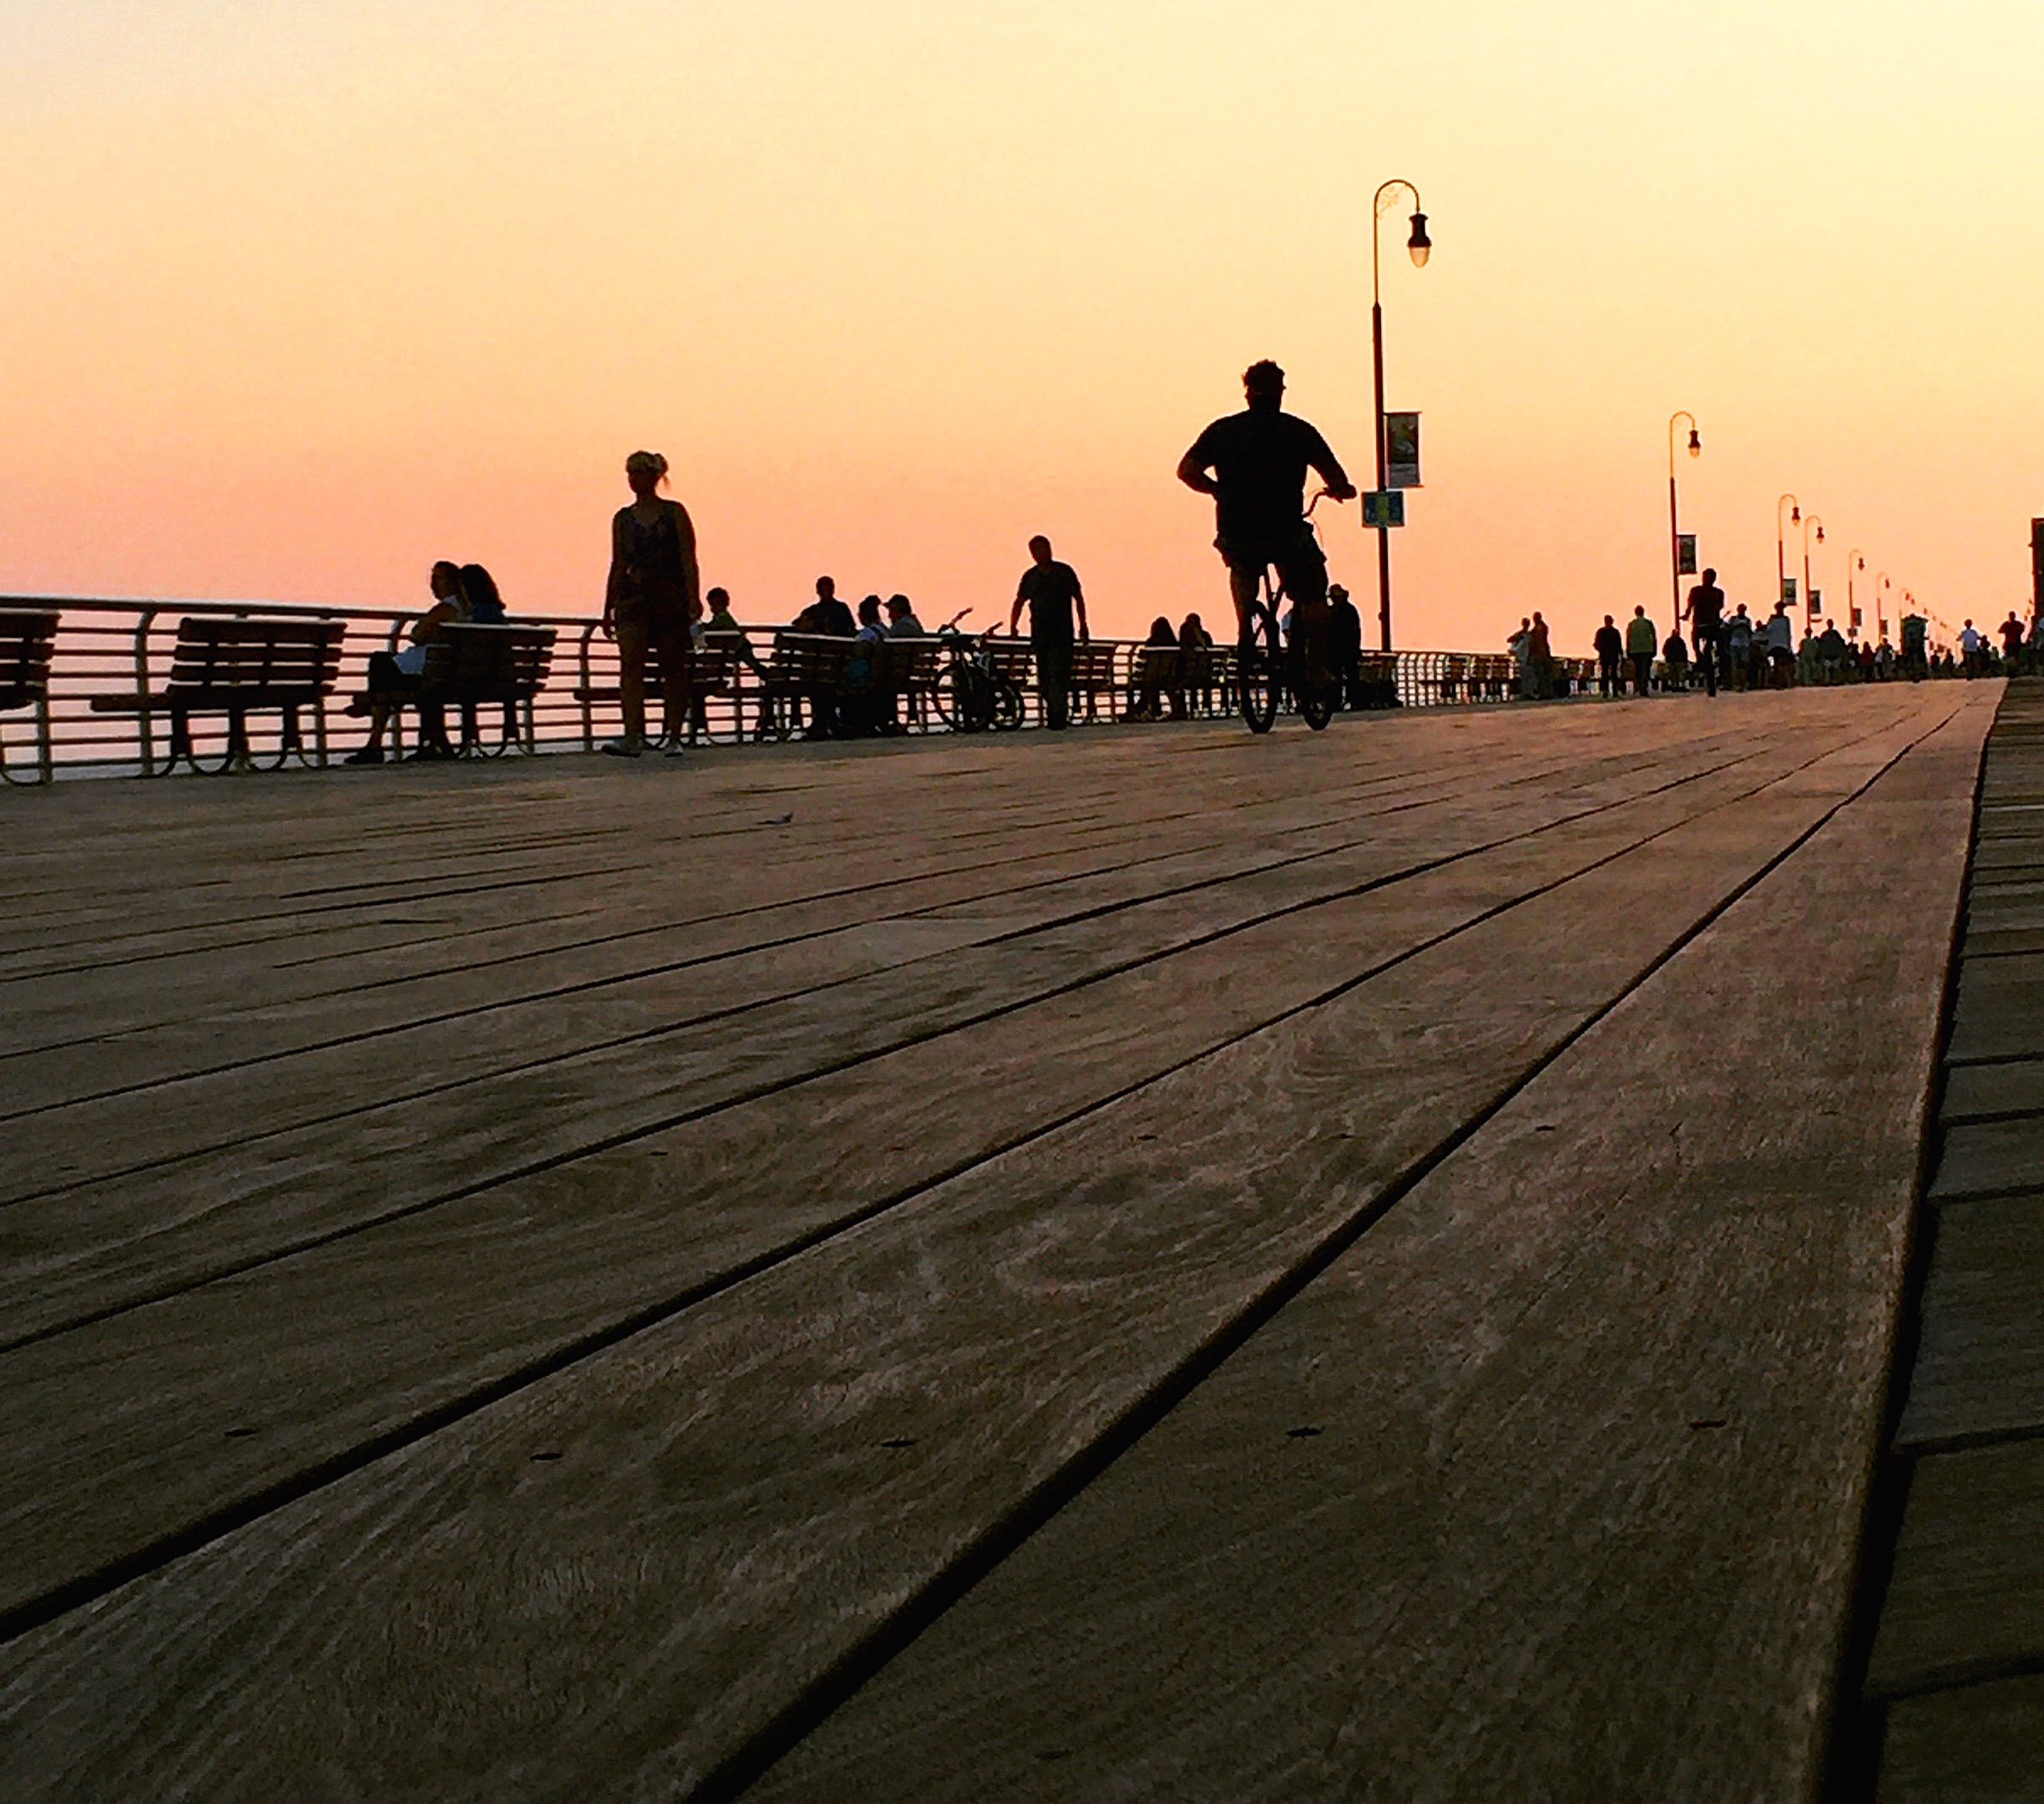 Dusk settles on the boardwalk in Long Beach, New York. (Photo: Joseph Kellard)